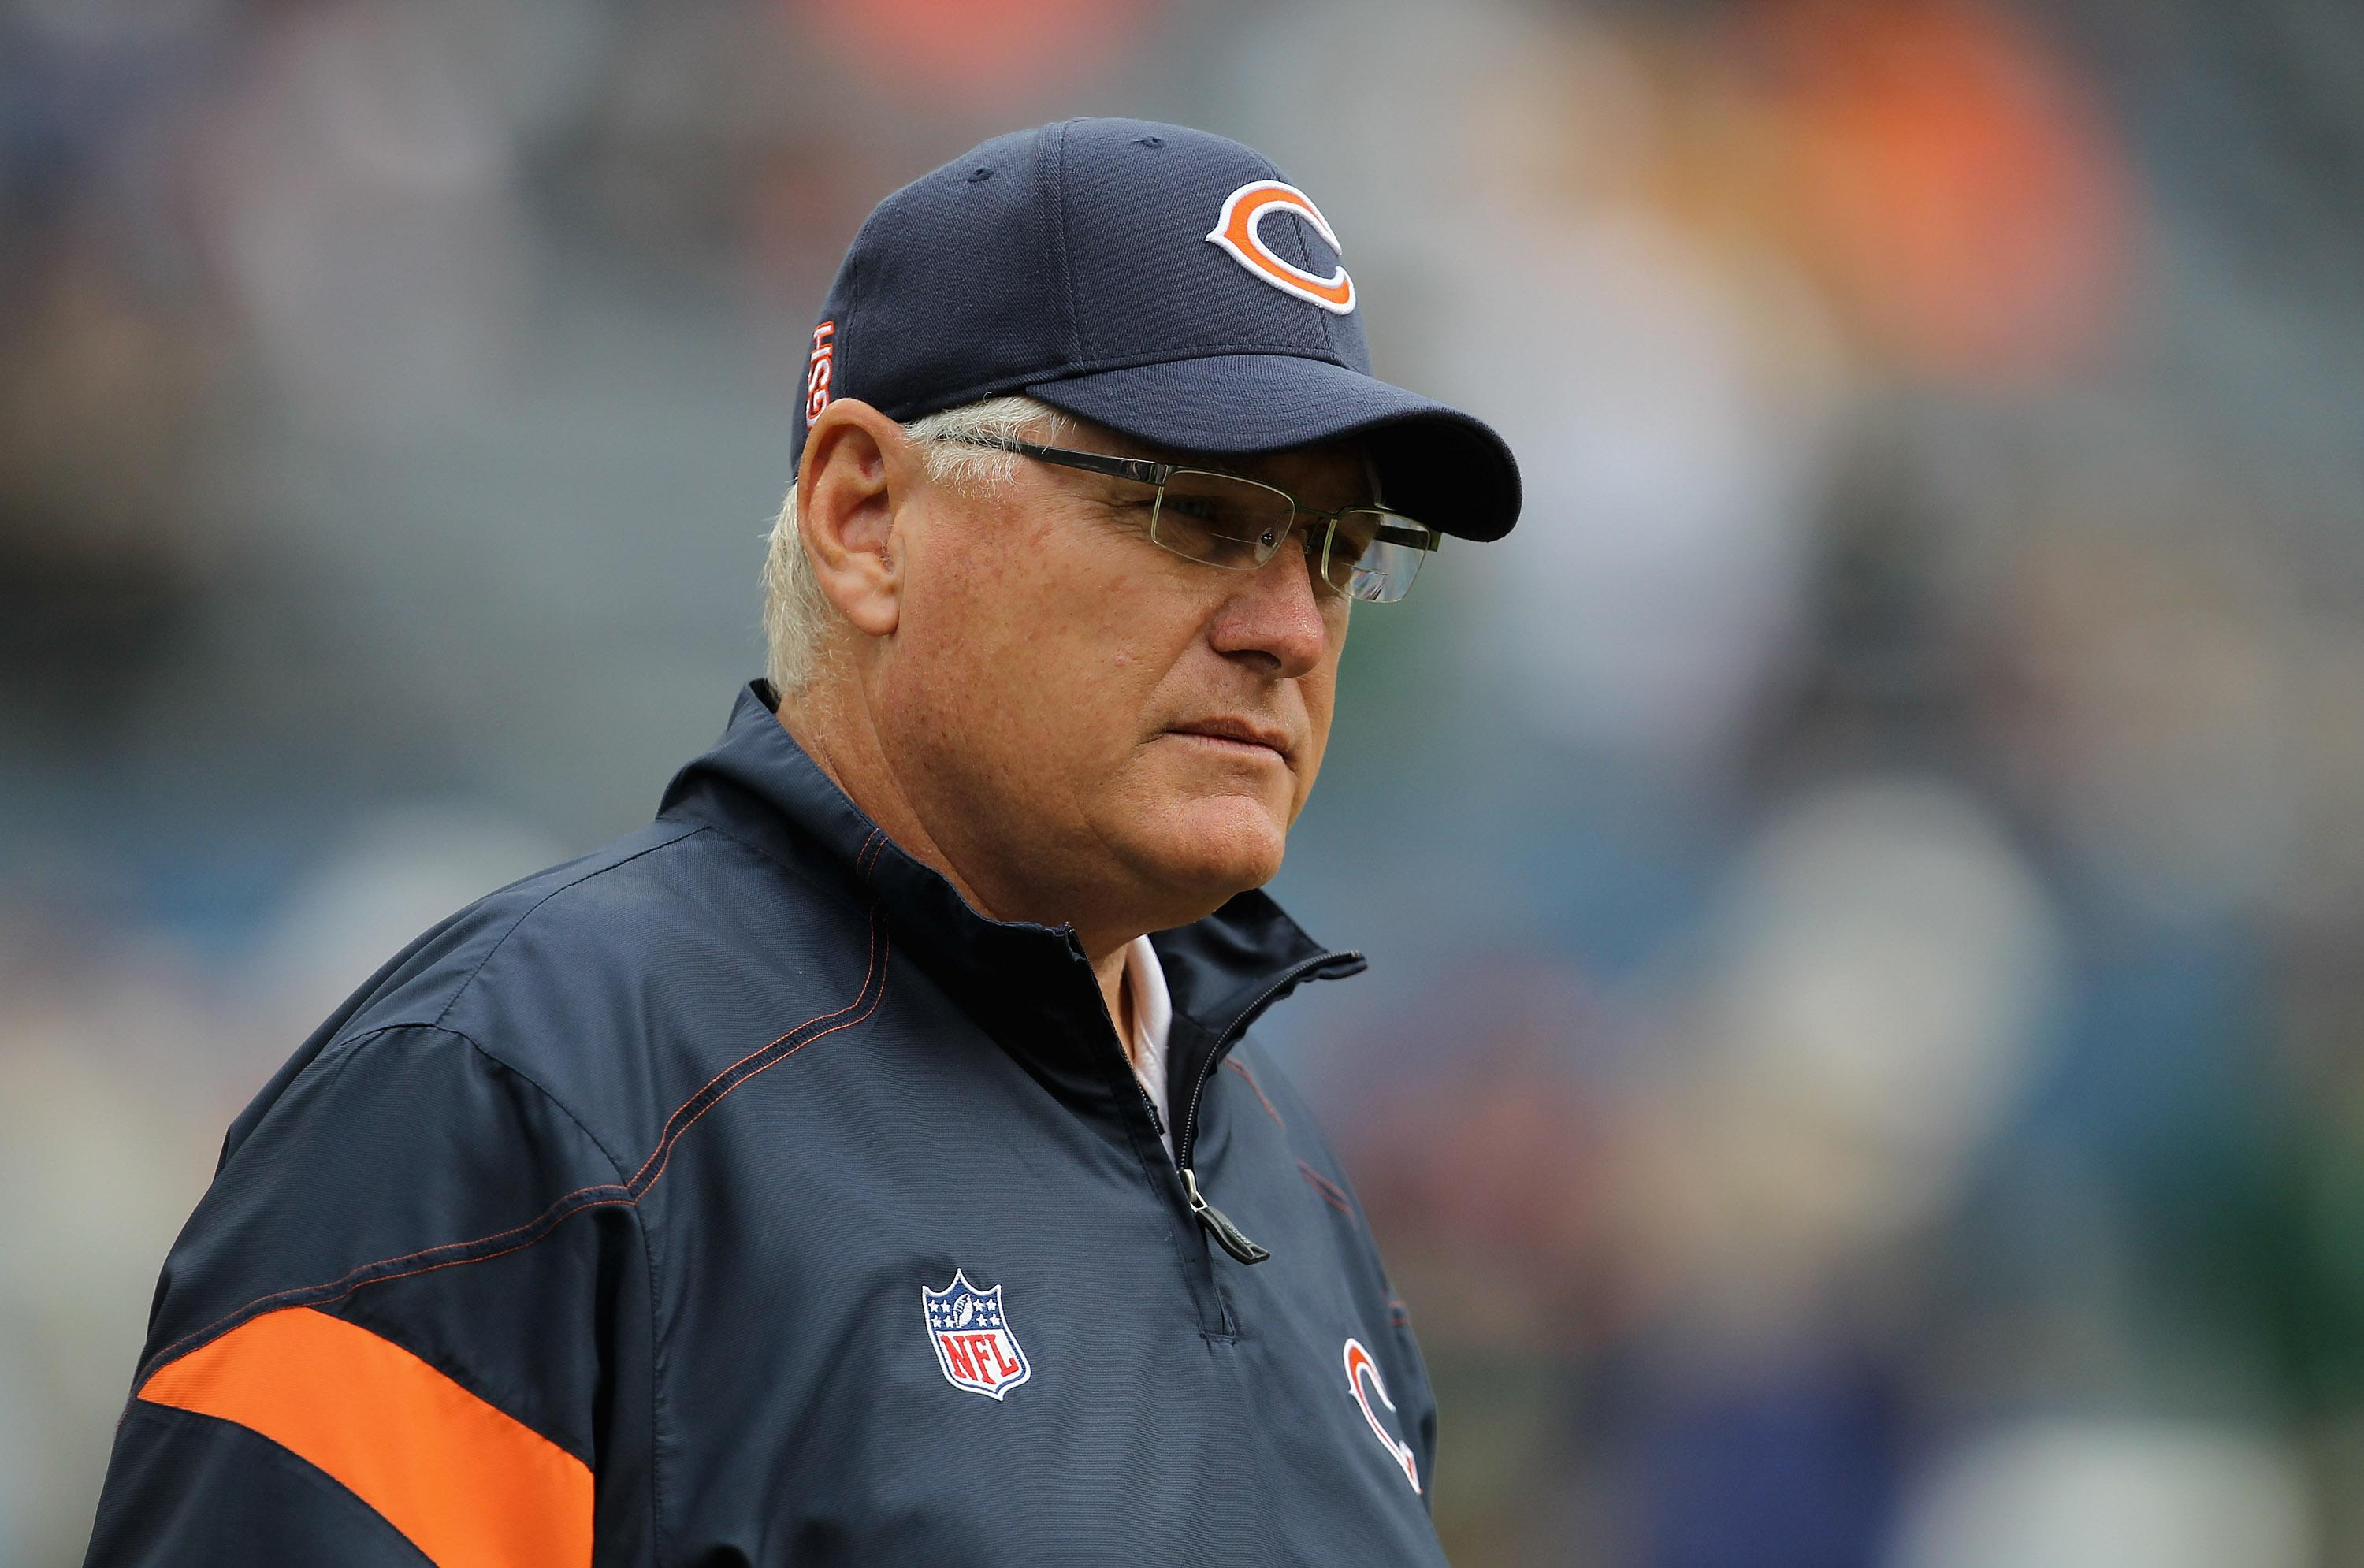 Offensive coordinator Mike Martz of the Chicago Bears.